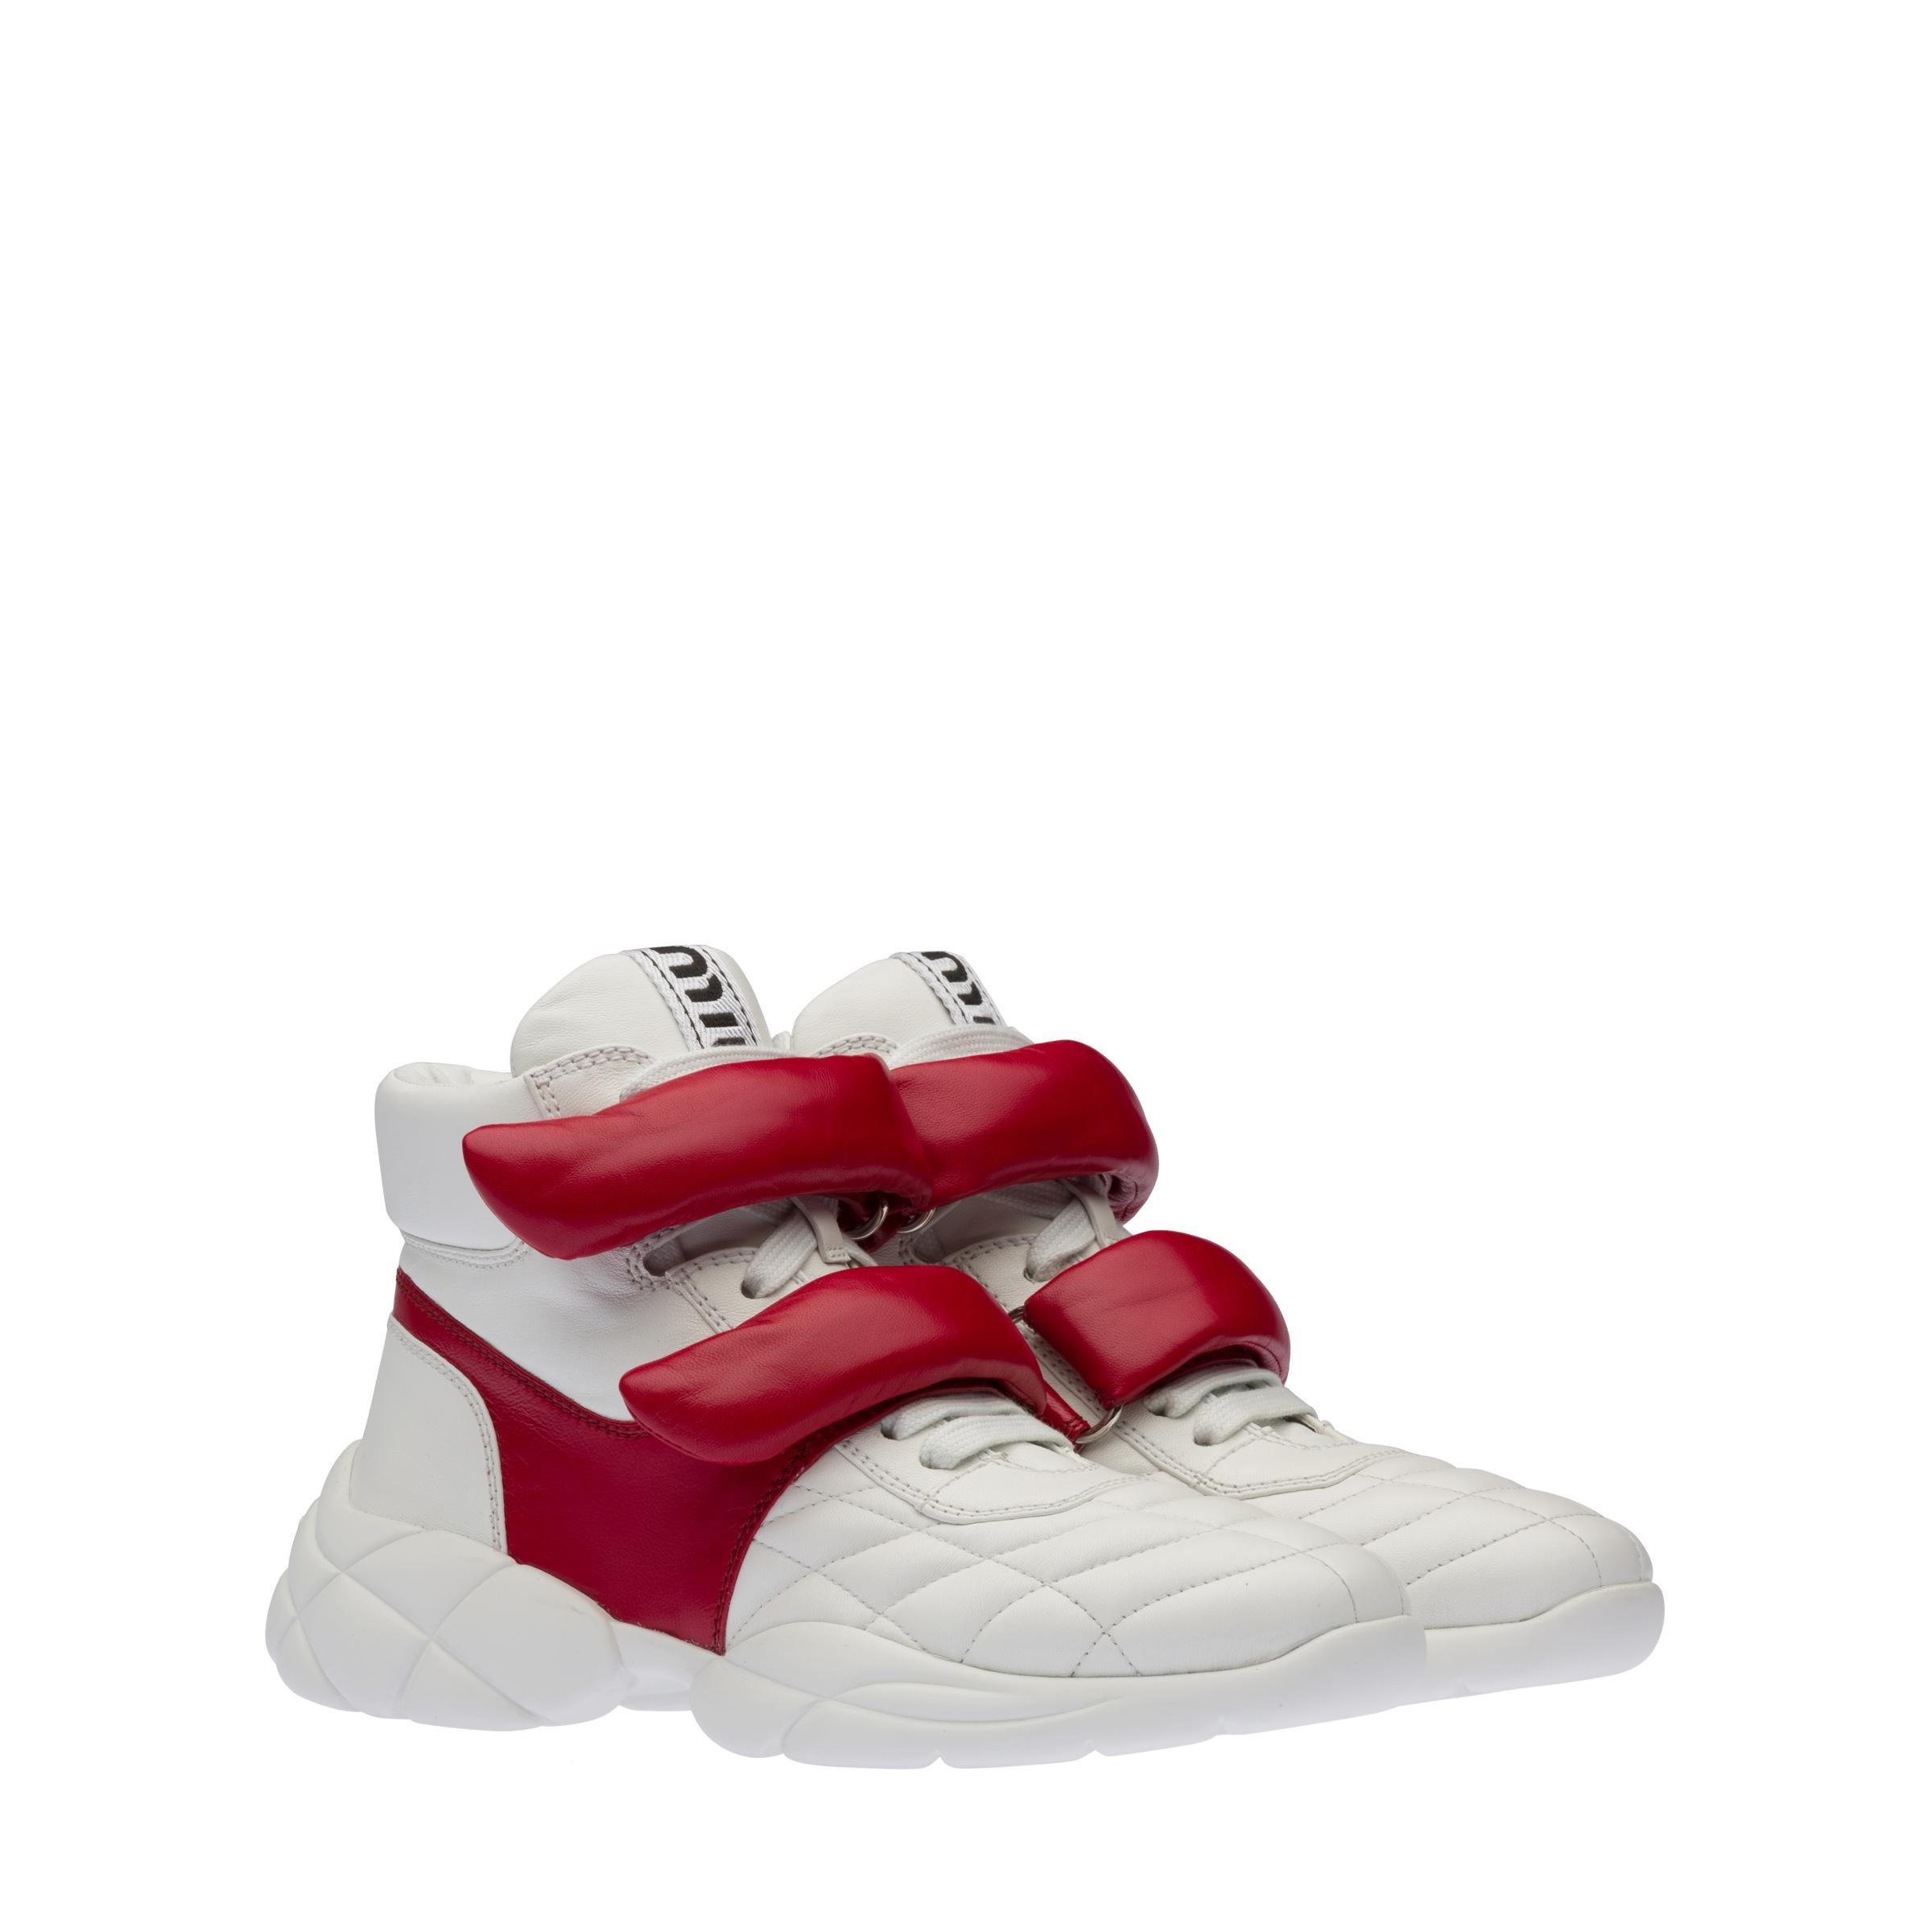 Nappa Leather High-top Sneakers Women White/red